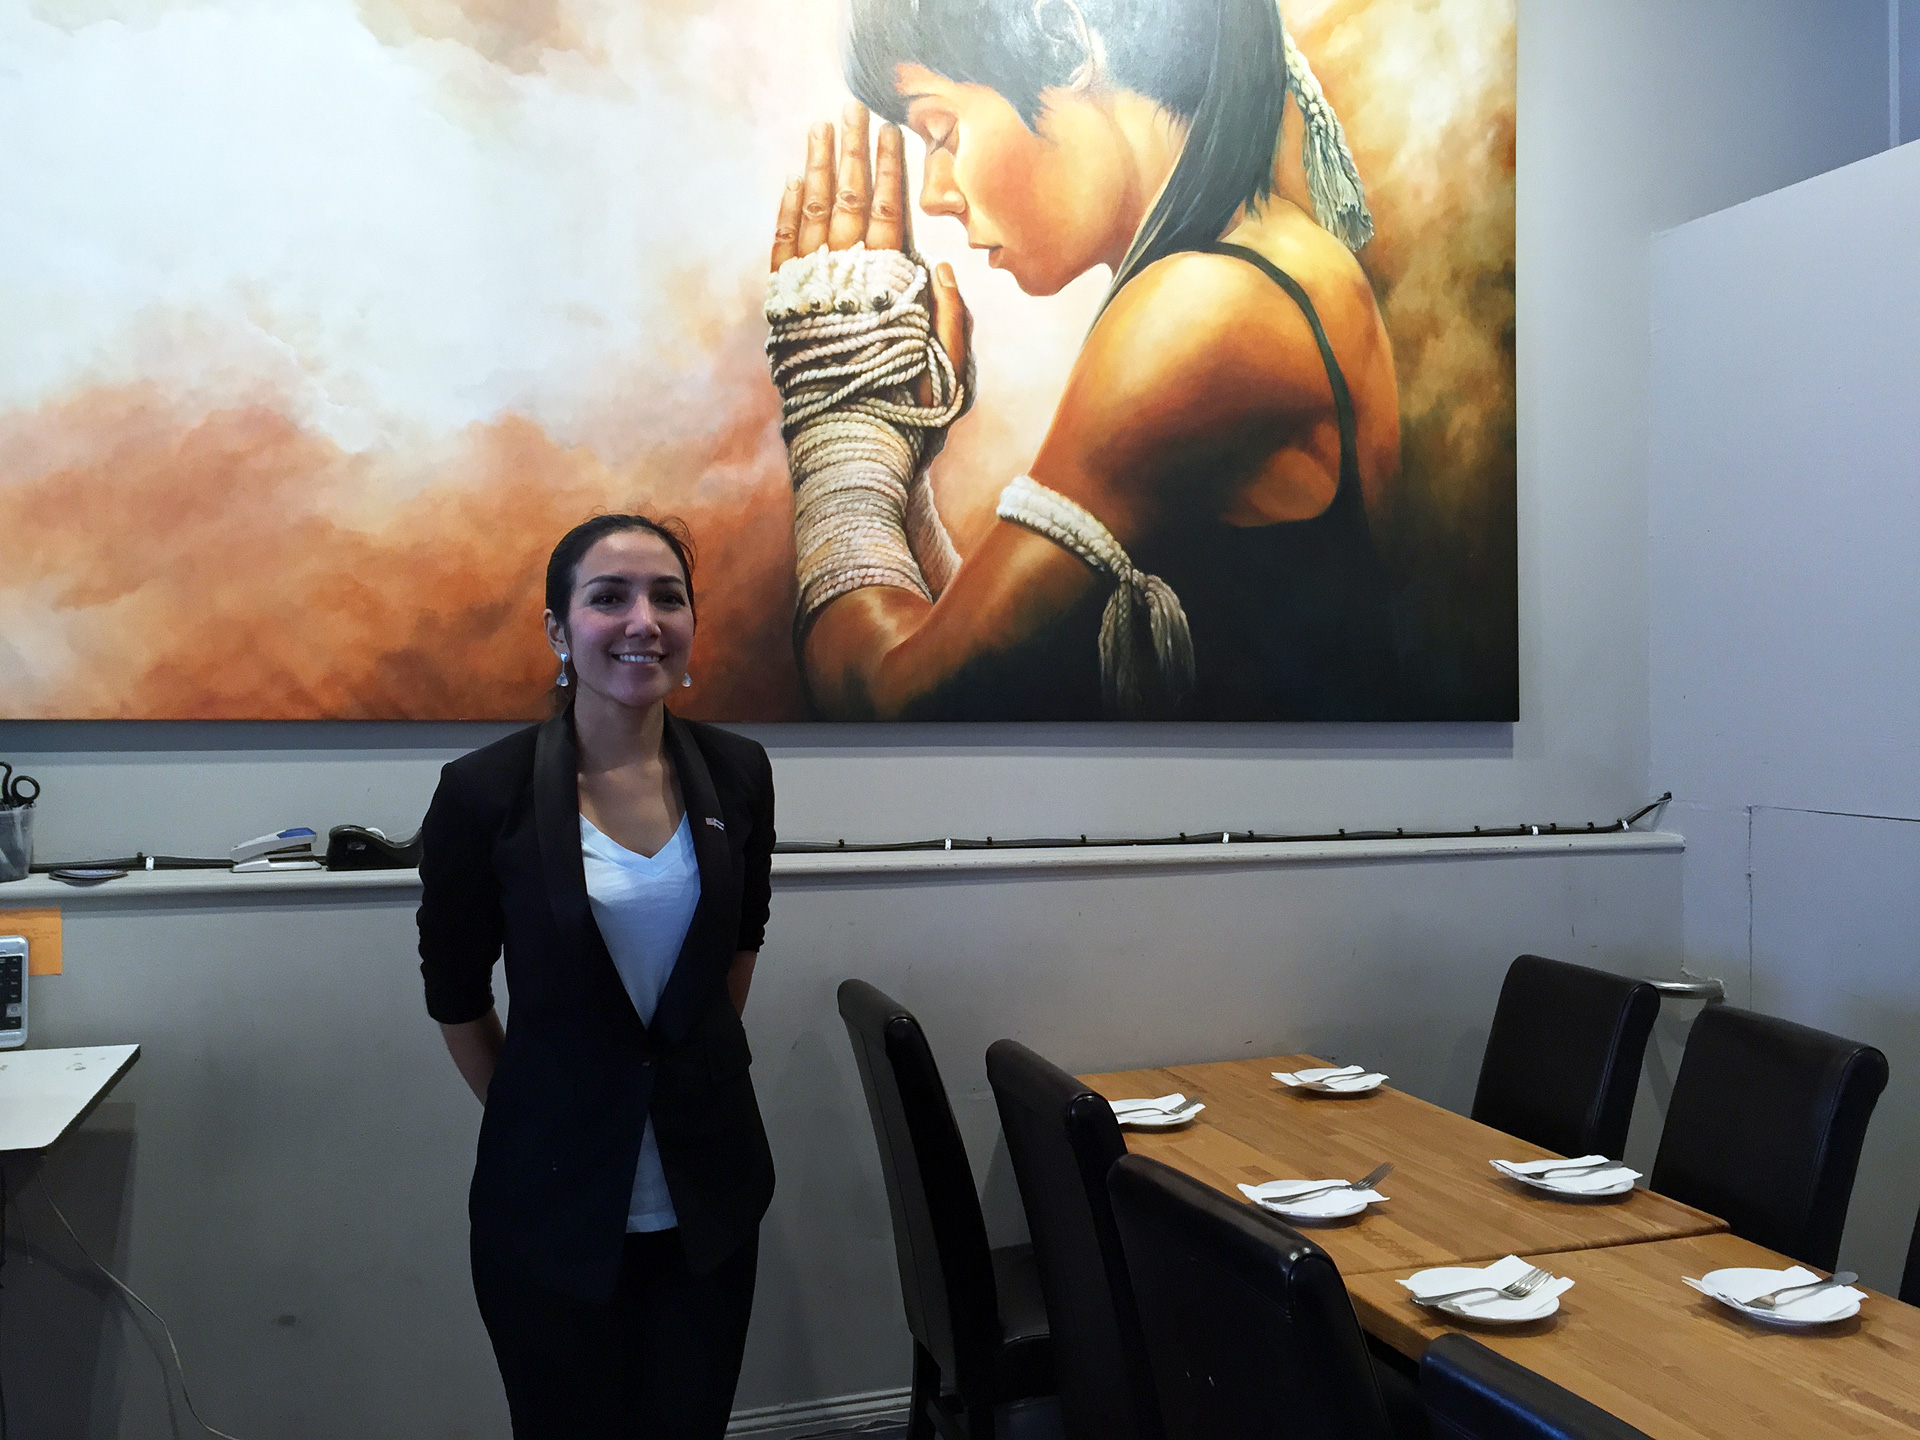 Chef-owner Salisa Skinner with one of her sister Air's large oil paintings.